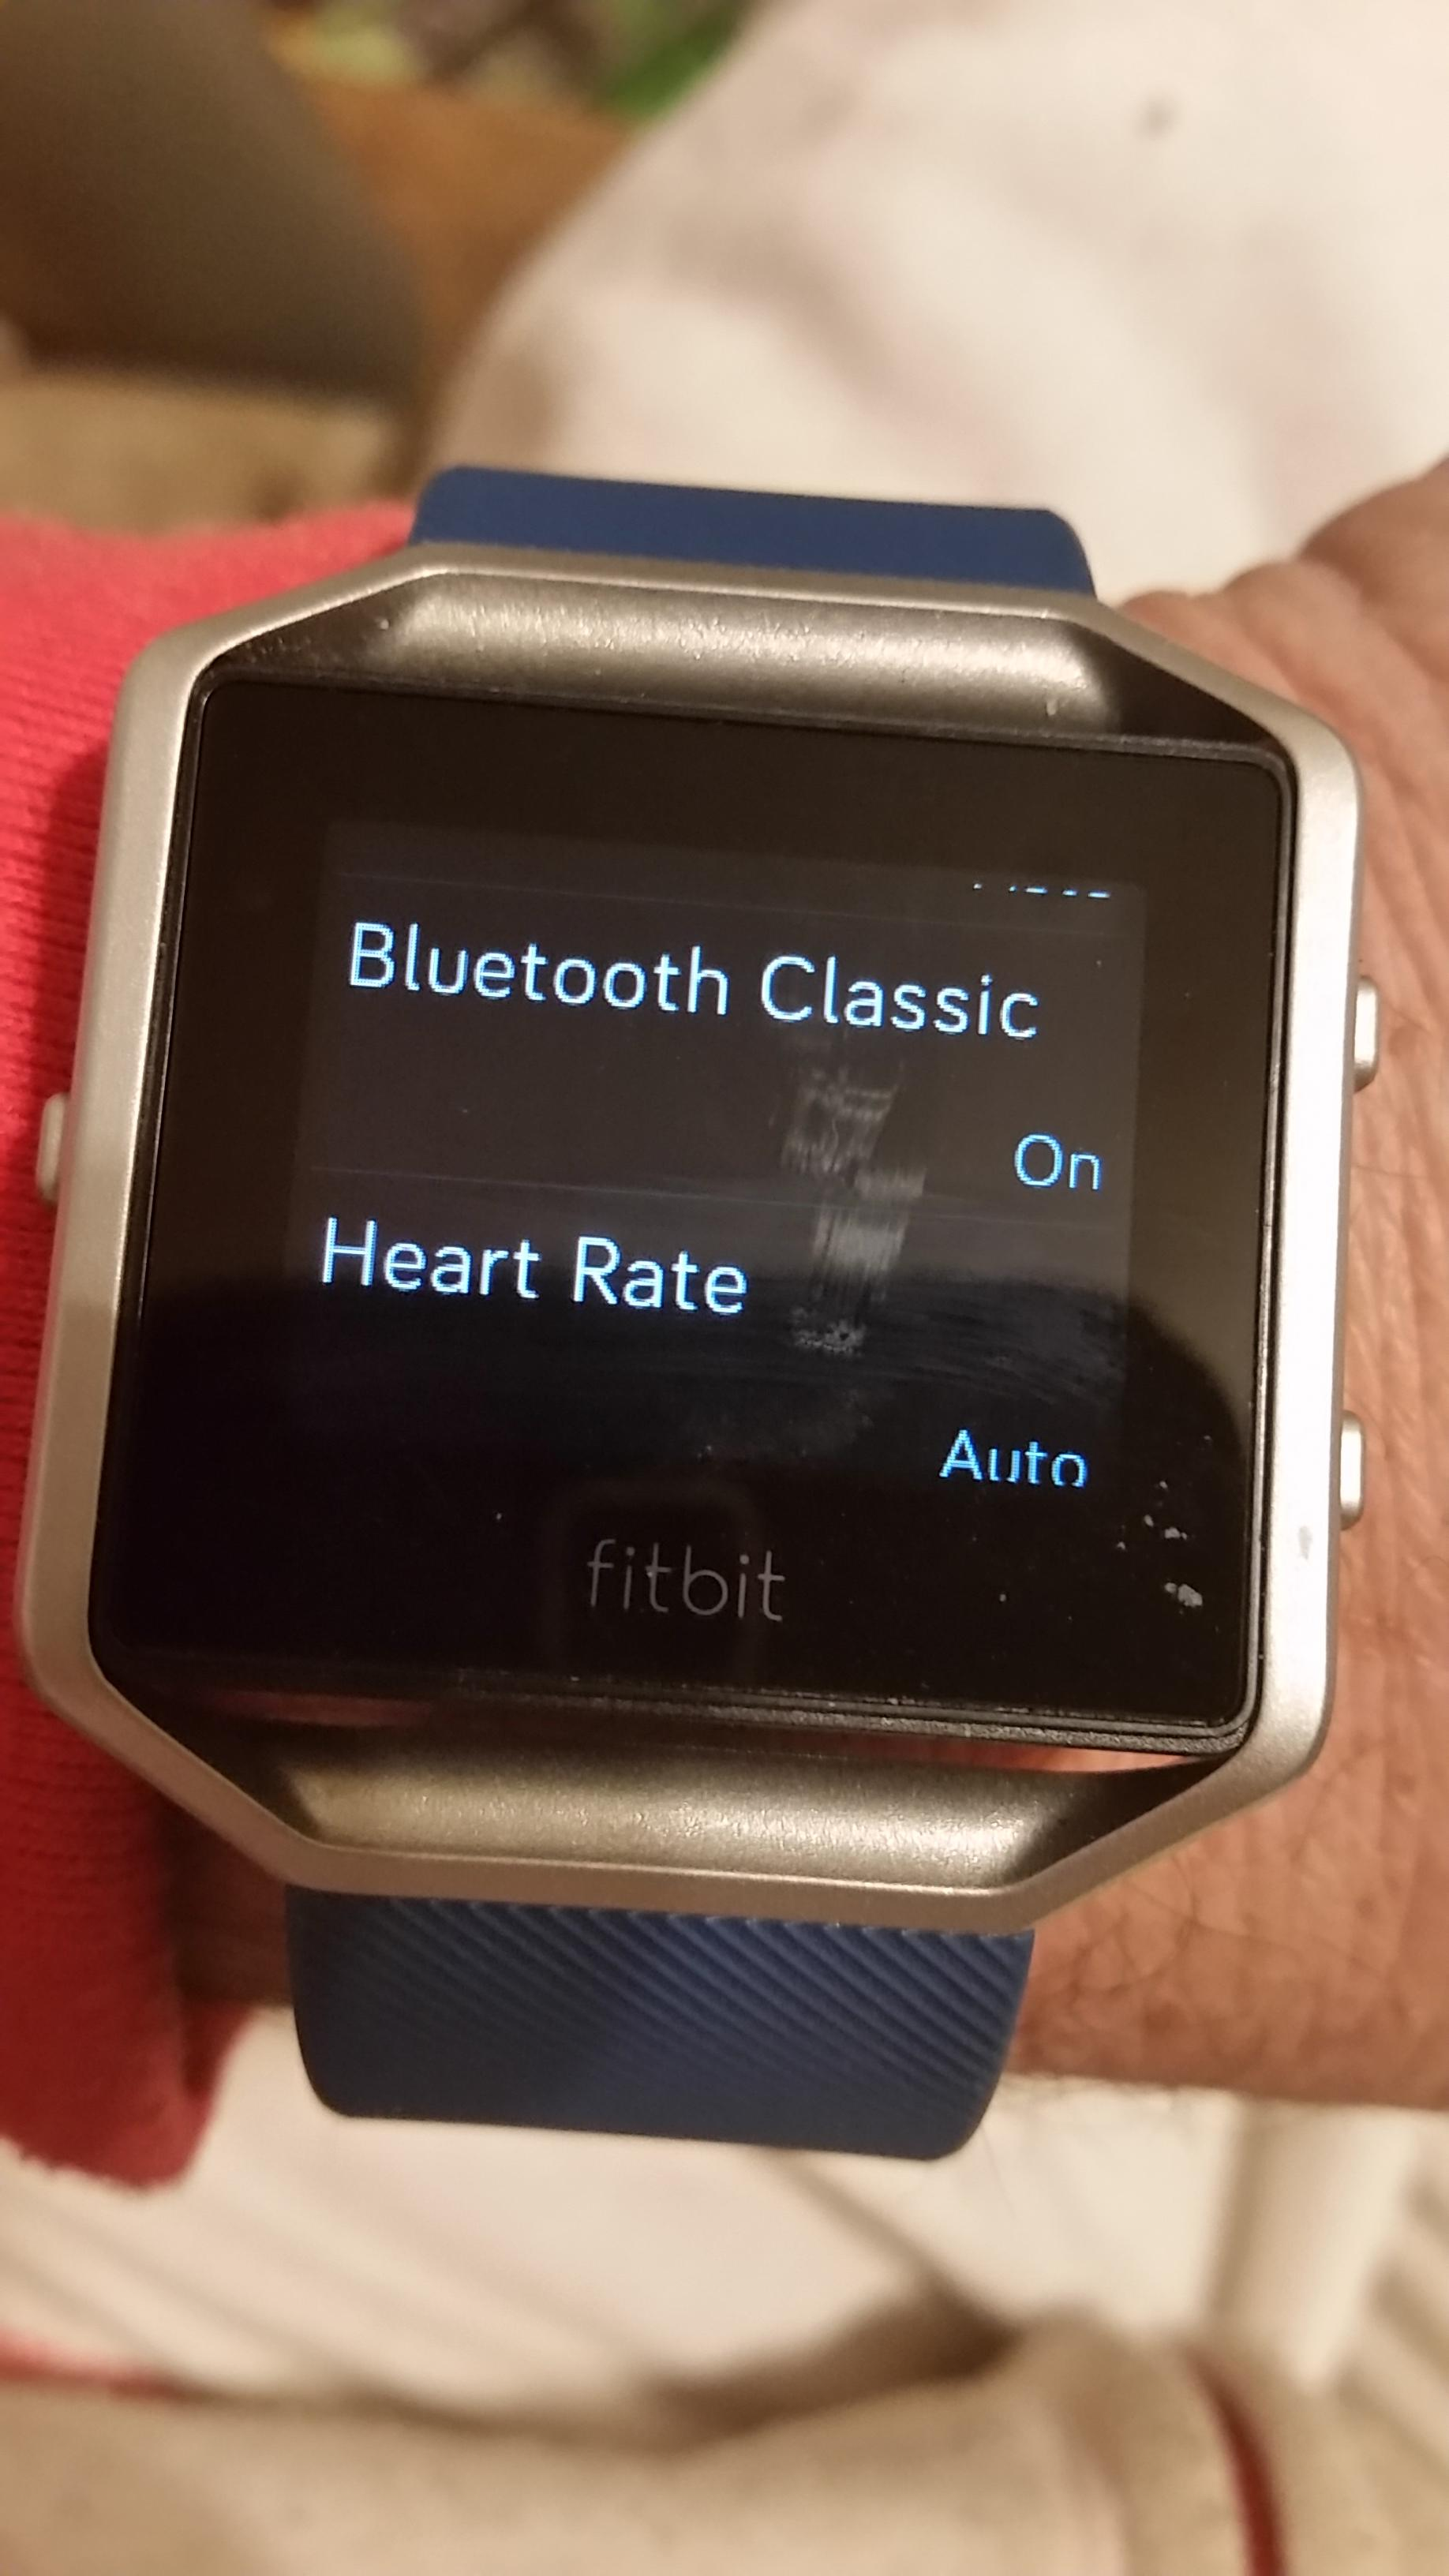 No Bluetooth option listed in the settings of my B    - Fitbit Community